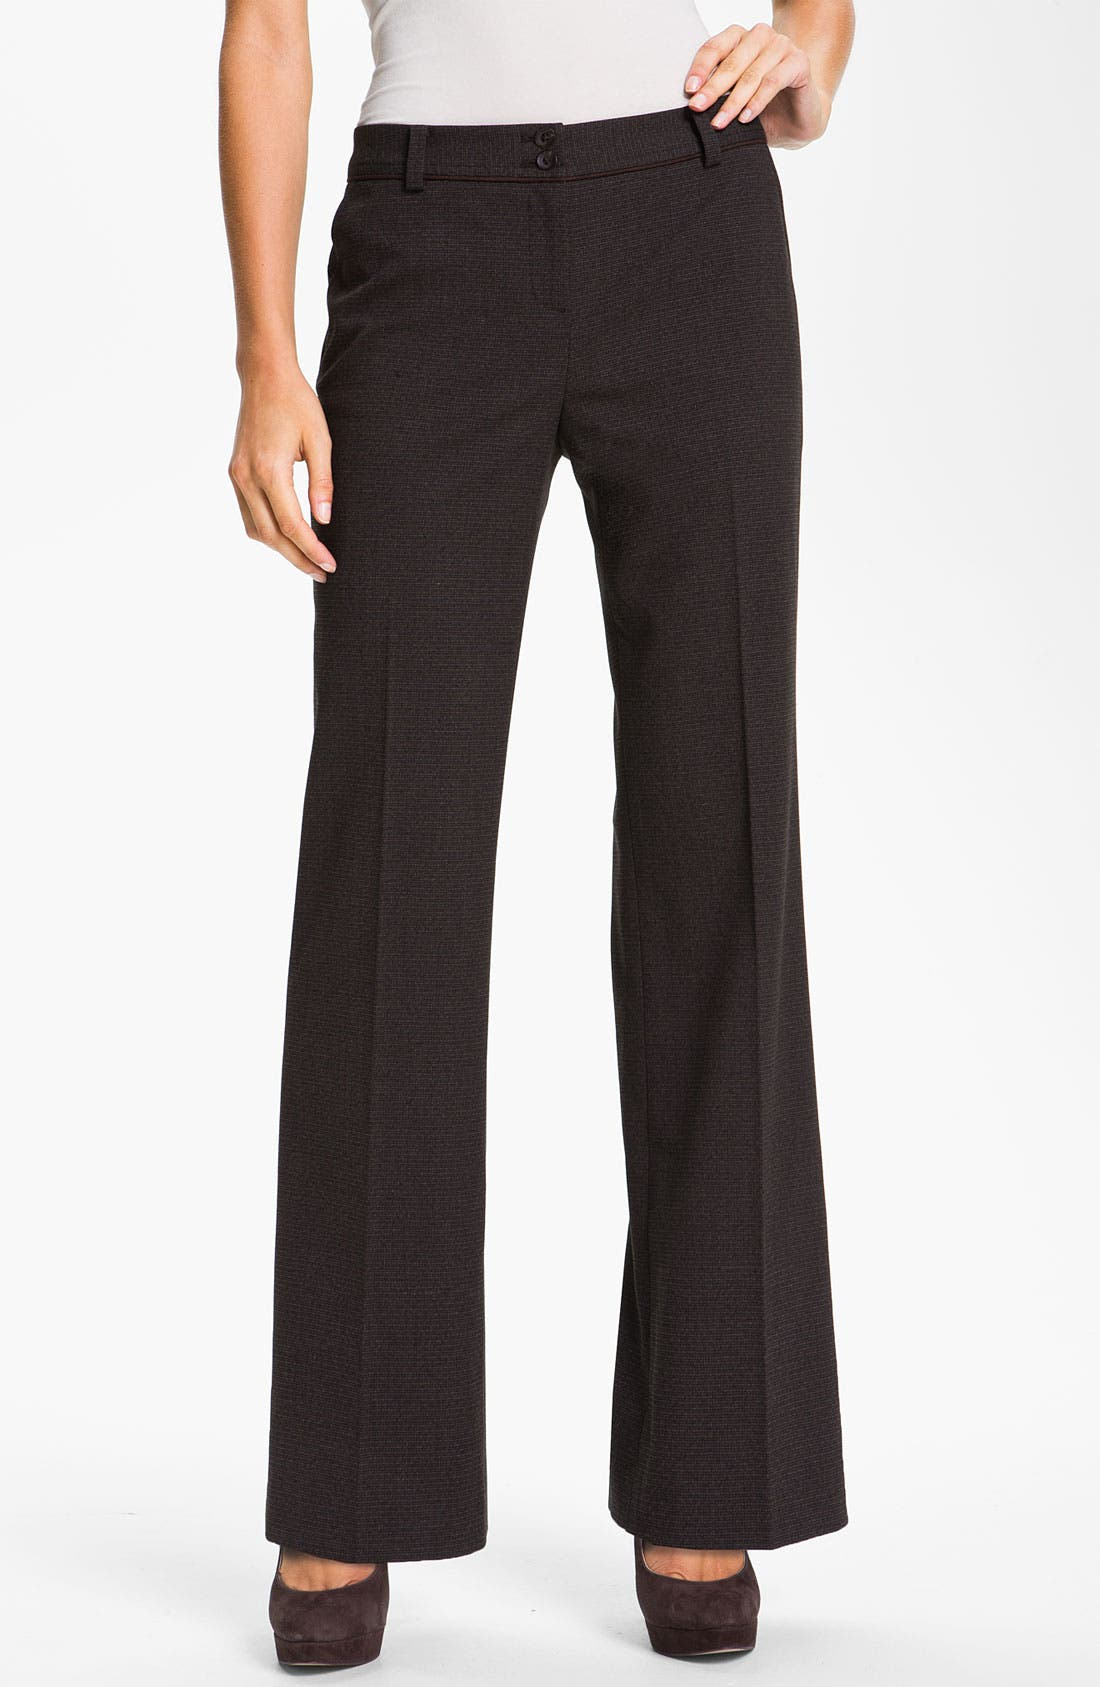 Main Image - Halogen® 'Taylor' Cross Weave Curvy Fit Pants (Petite)